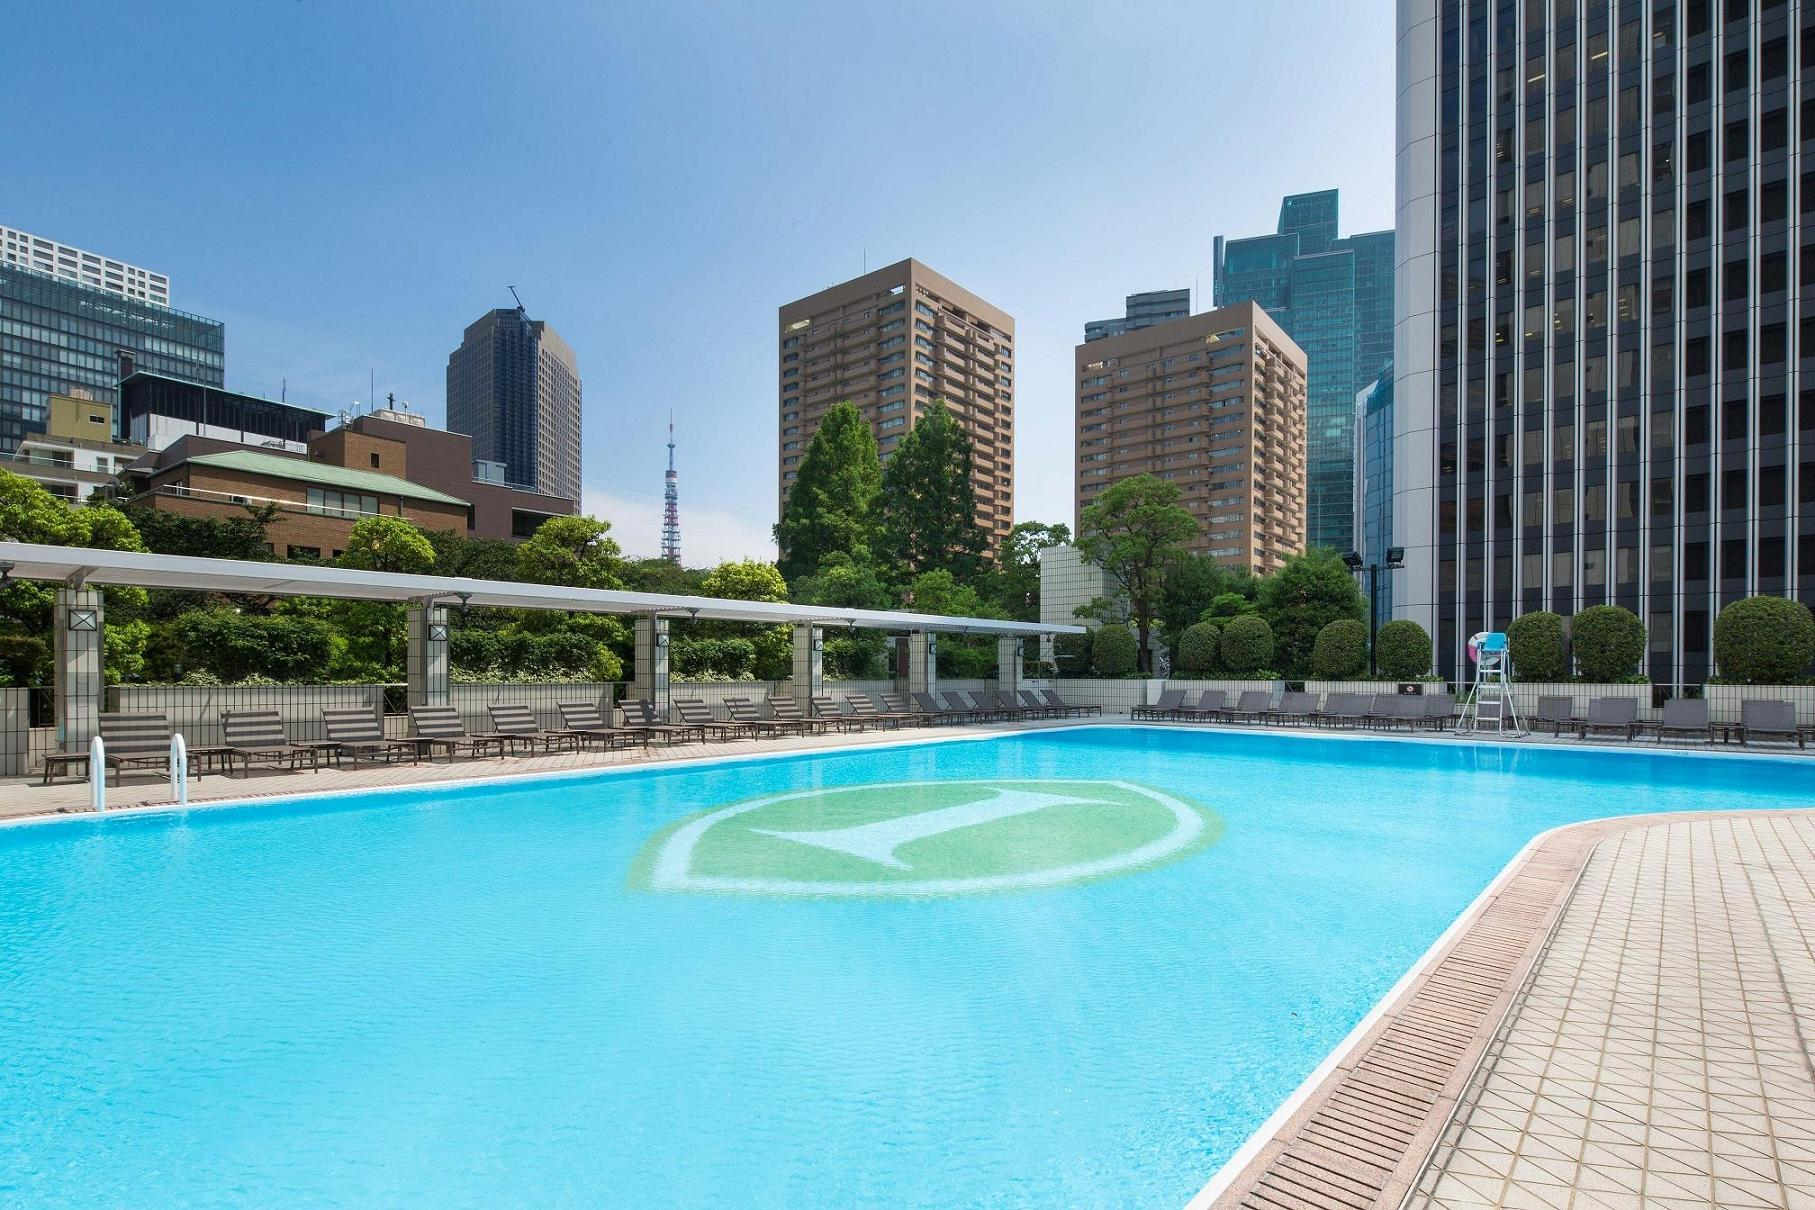 Garden pool at ana intercontinental tokyo things to do - Luxury hotels in madrid with swimming pool ...